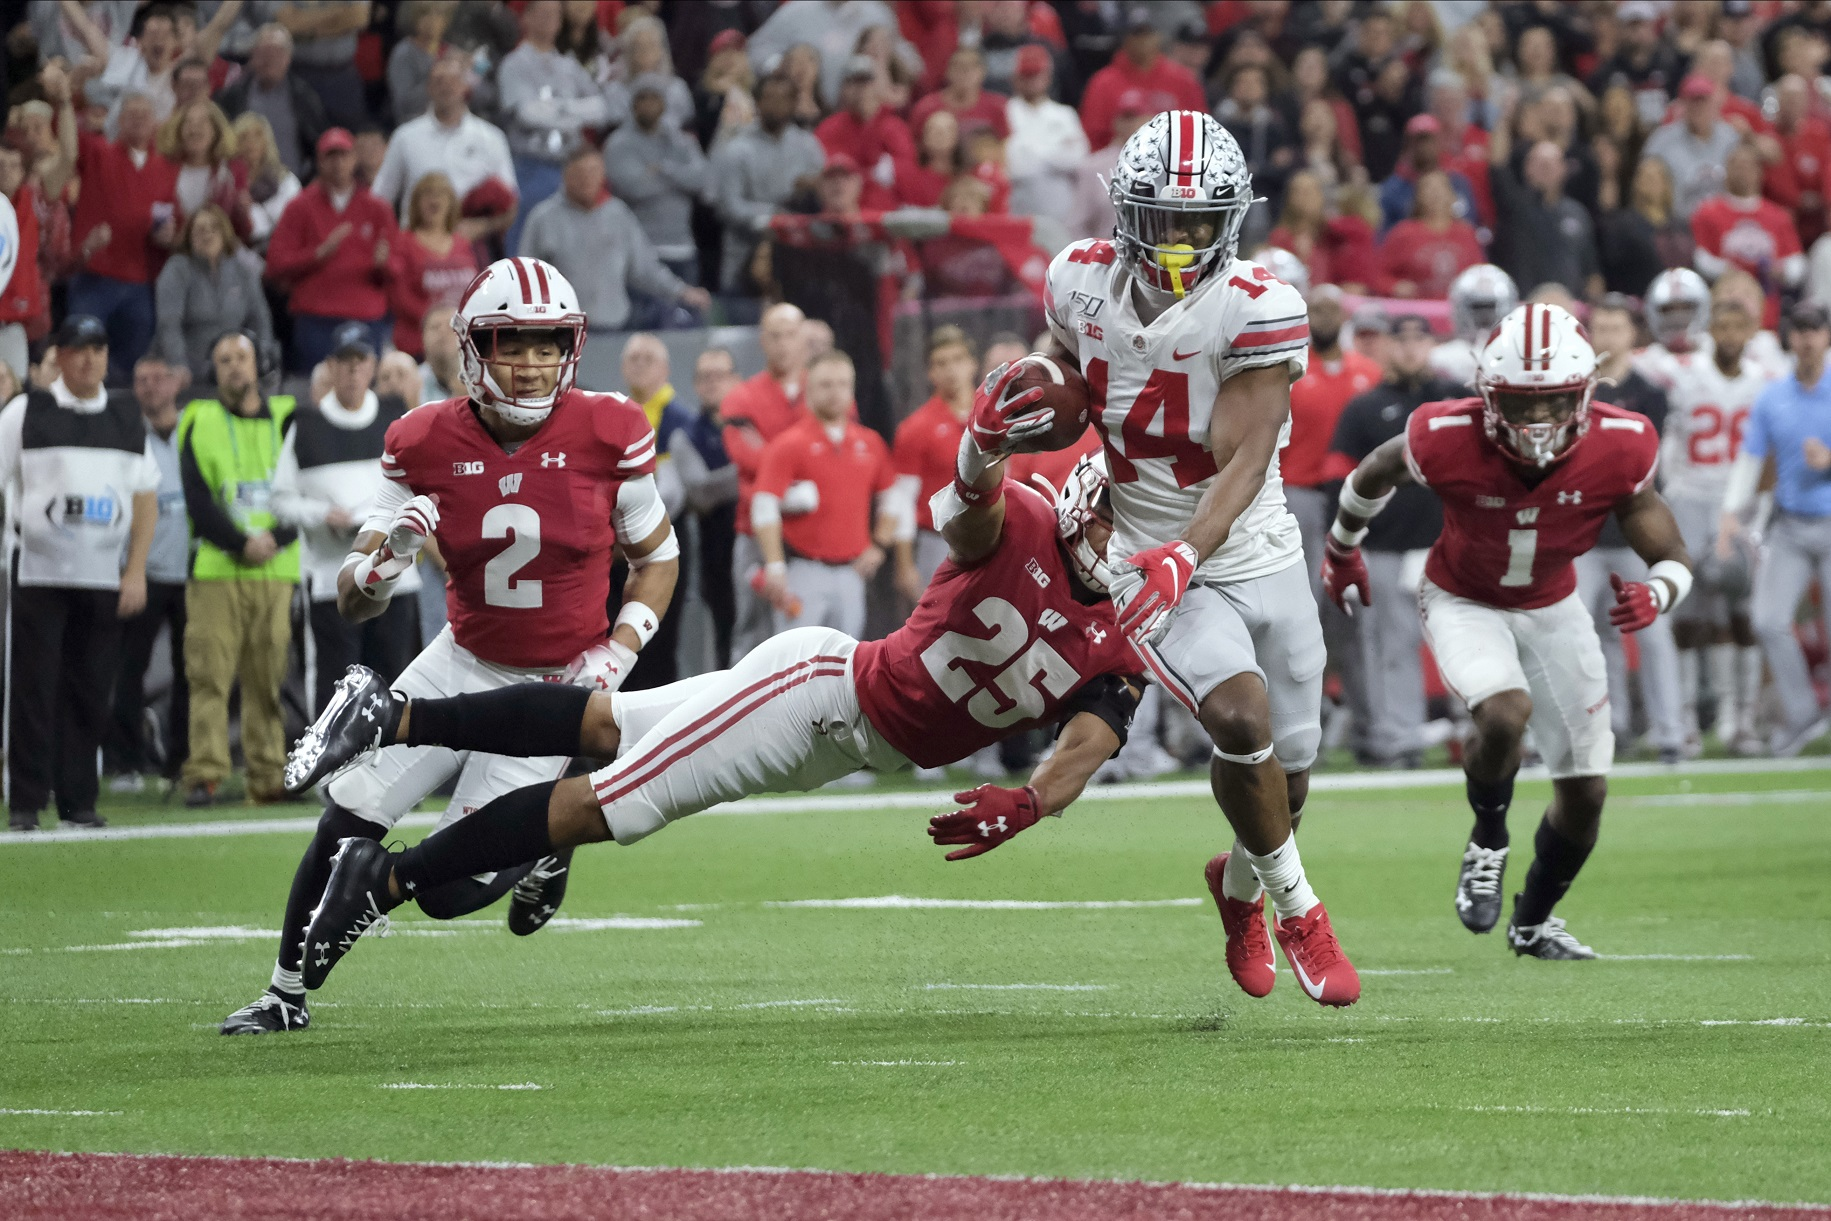 AP Top 25 Reality Check: Big Ten back in poll, not on field; Badgers No. 19